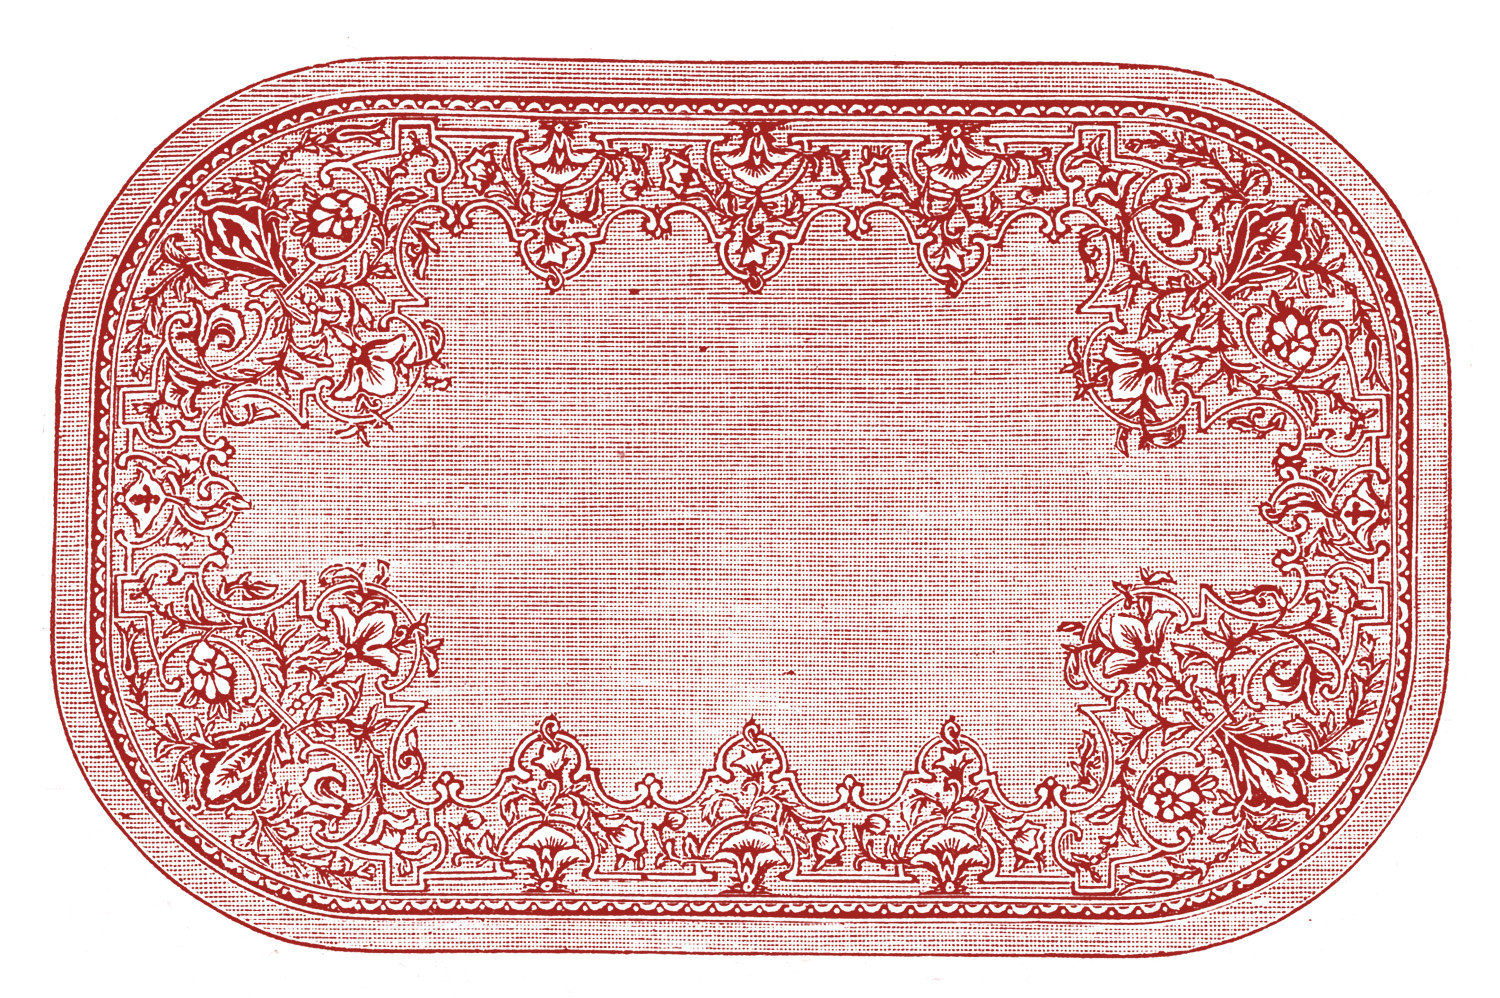 Stock images carpets rugs. Carpet clipart pink rug